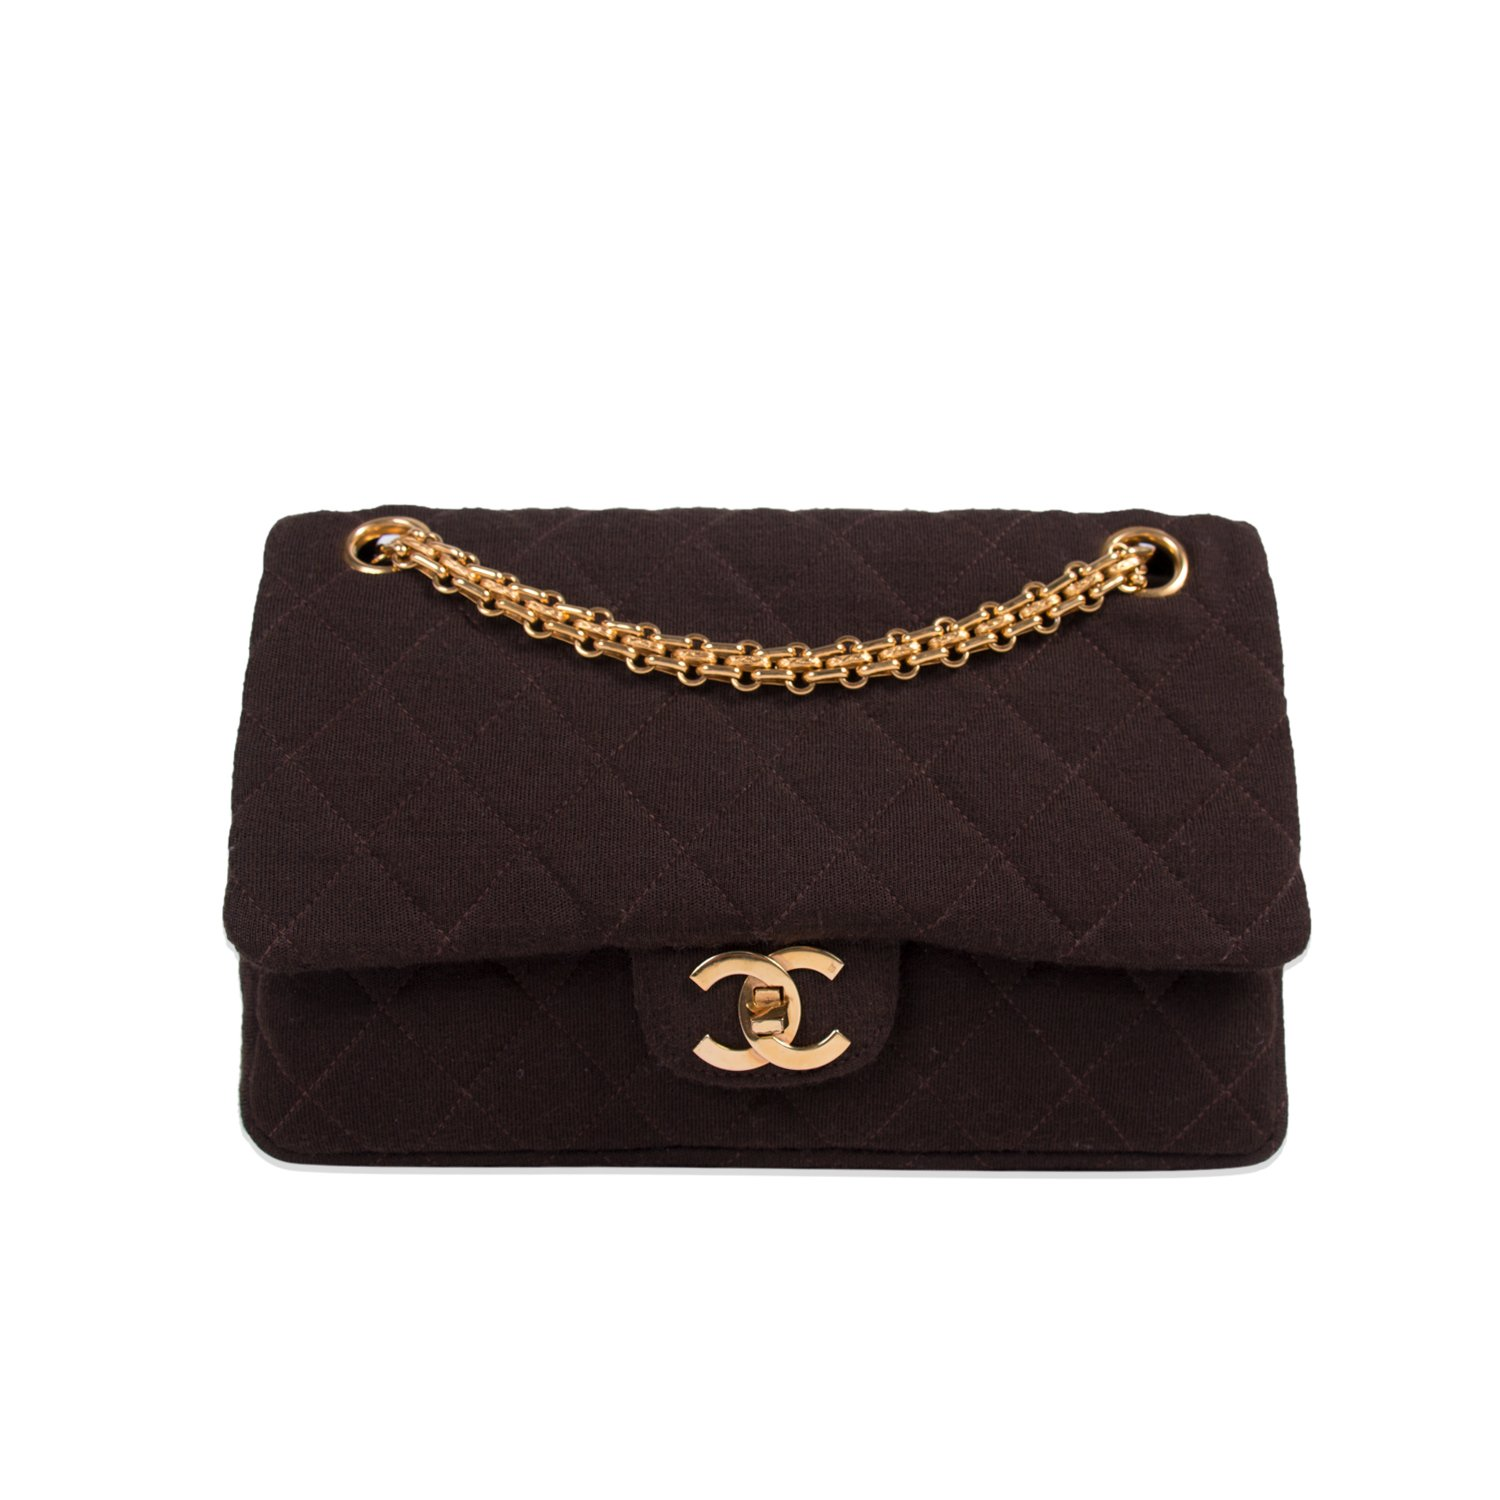 693925d35088a CHANEL VINTAGE BROWN JERSEY FABRIC SMALL FLAP HANDBAG - My Luxury Bargain